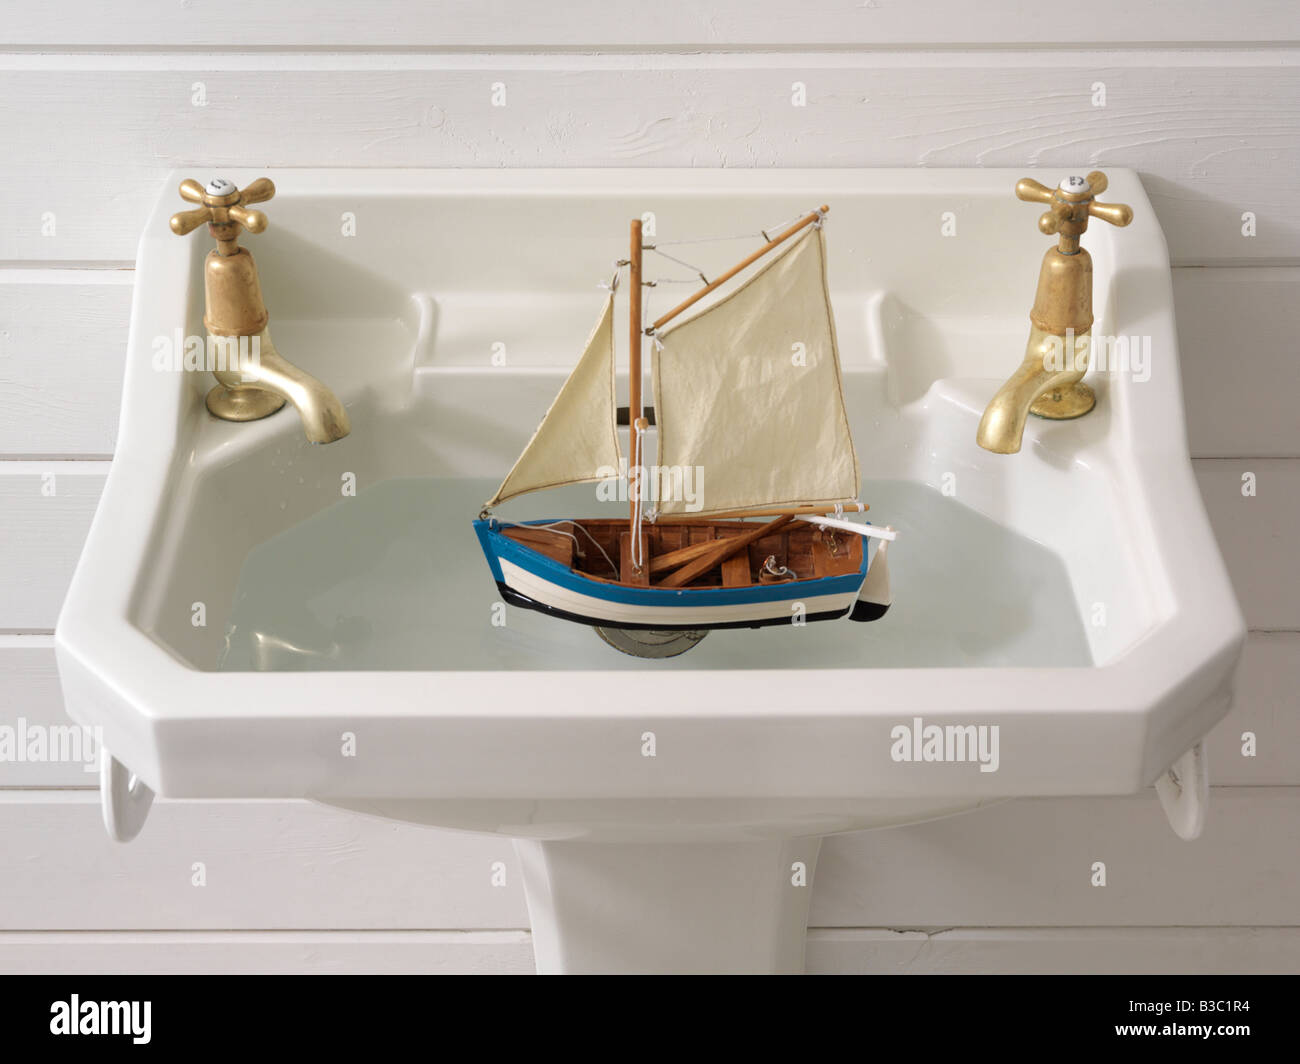 Wooden Sink Stock Photos & Wooden Sink Stock Images - Alamy